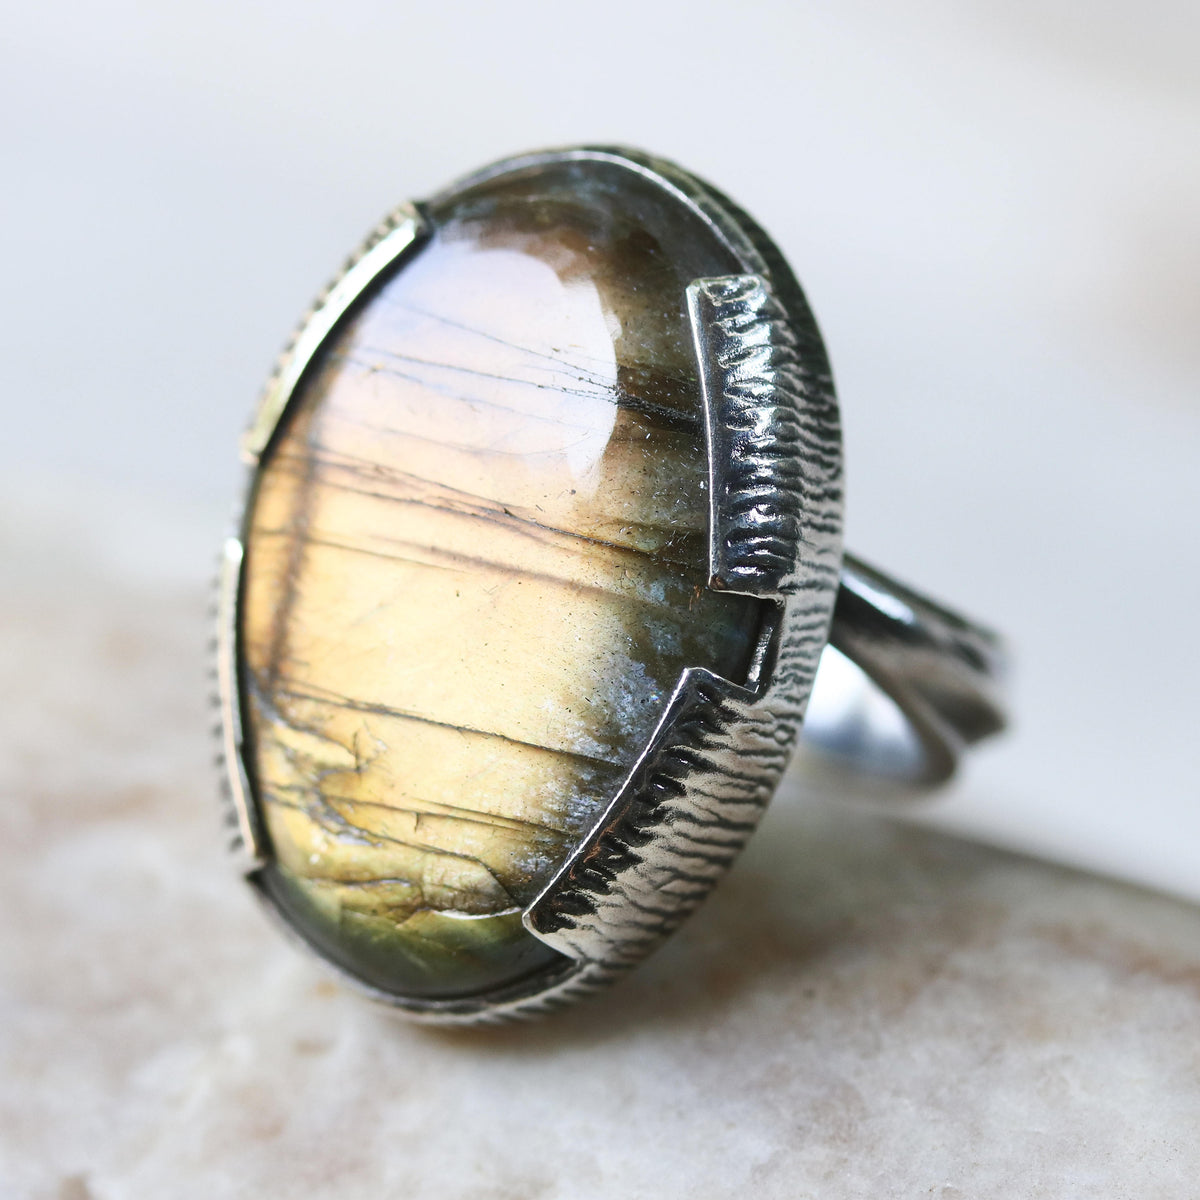 Labradorite and silver cocktail ring with stunning oval labradorite cabochon gemstone